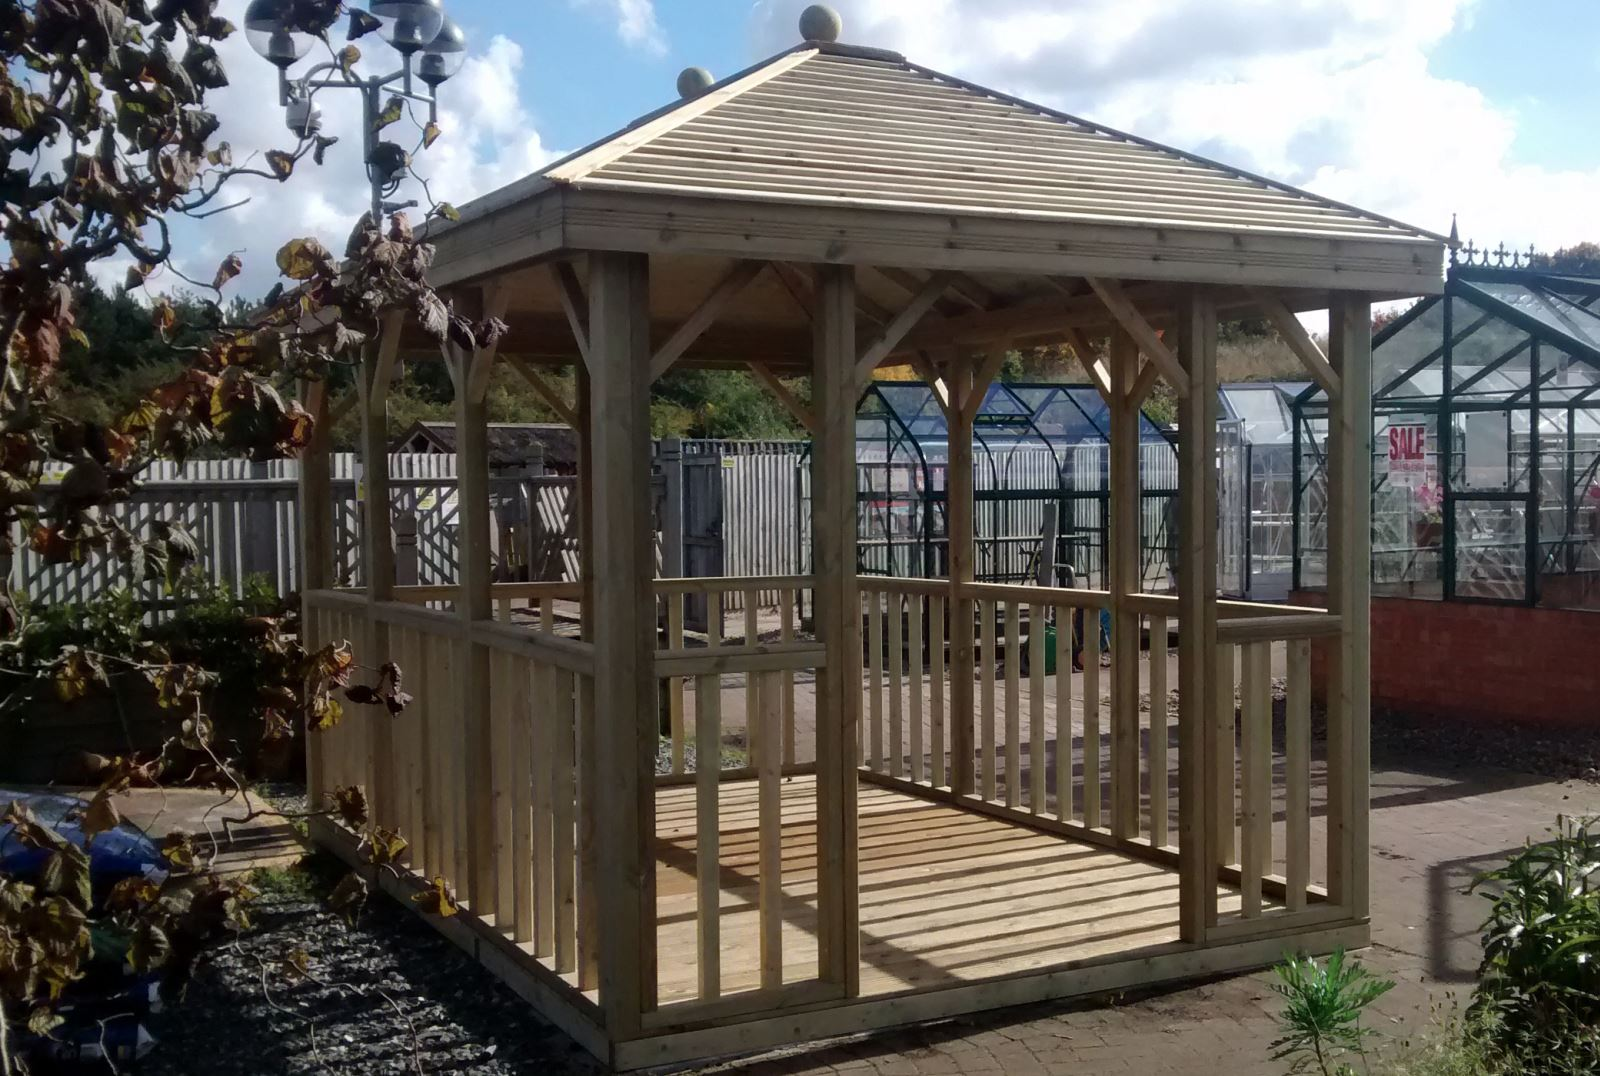 A gazebo like this Malvern Hanbury provides ideal shelter in rainy weather!